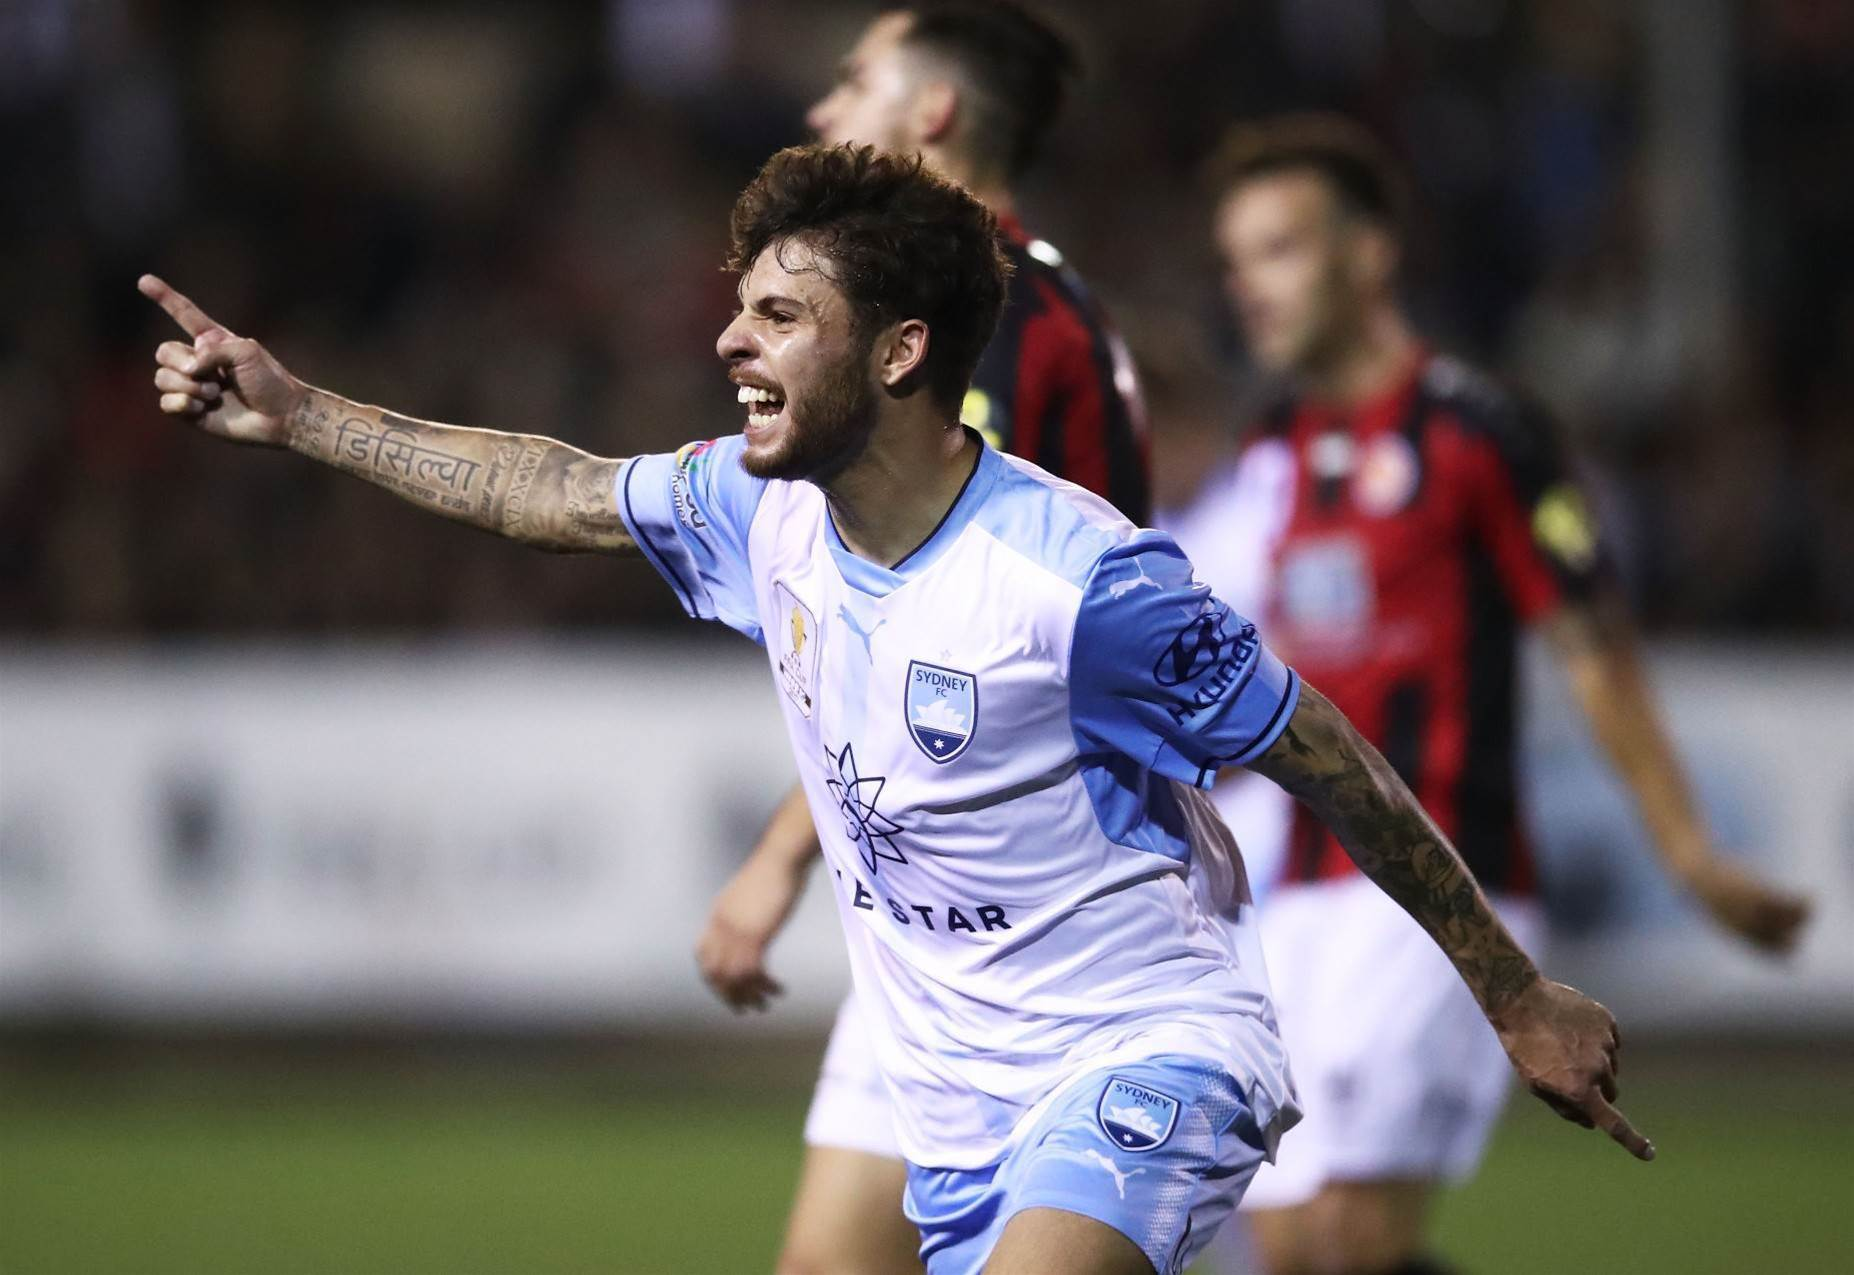 De Silva debut strike pleases Corica